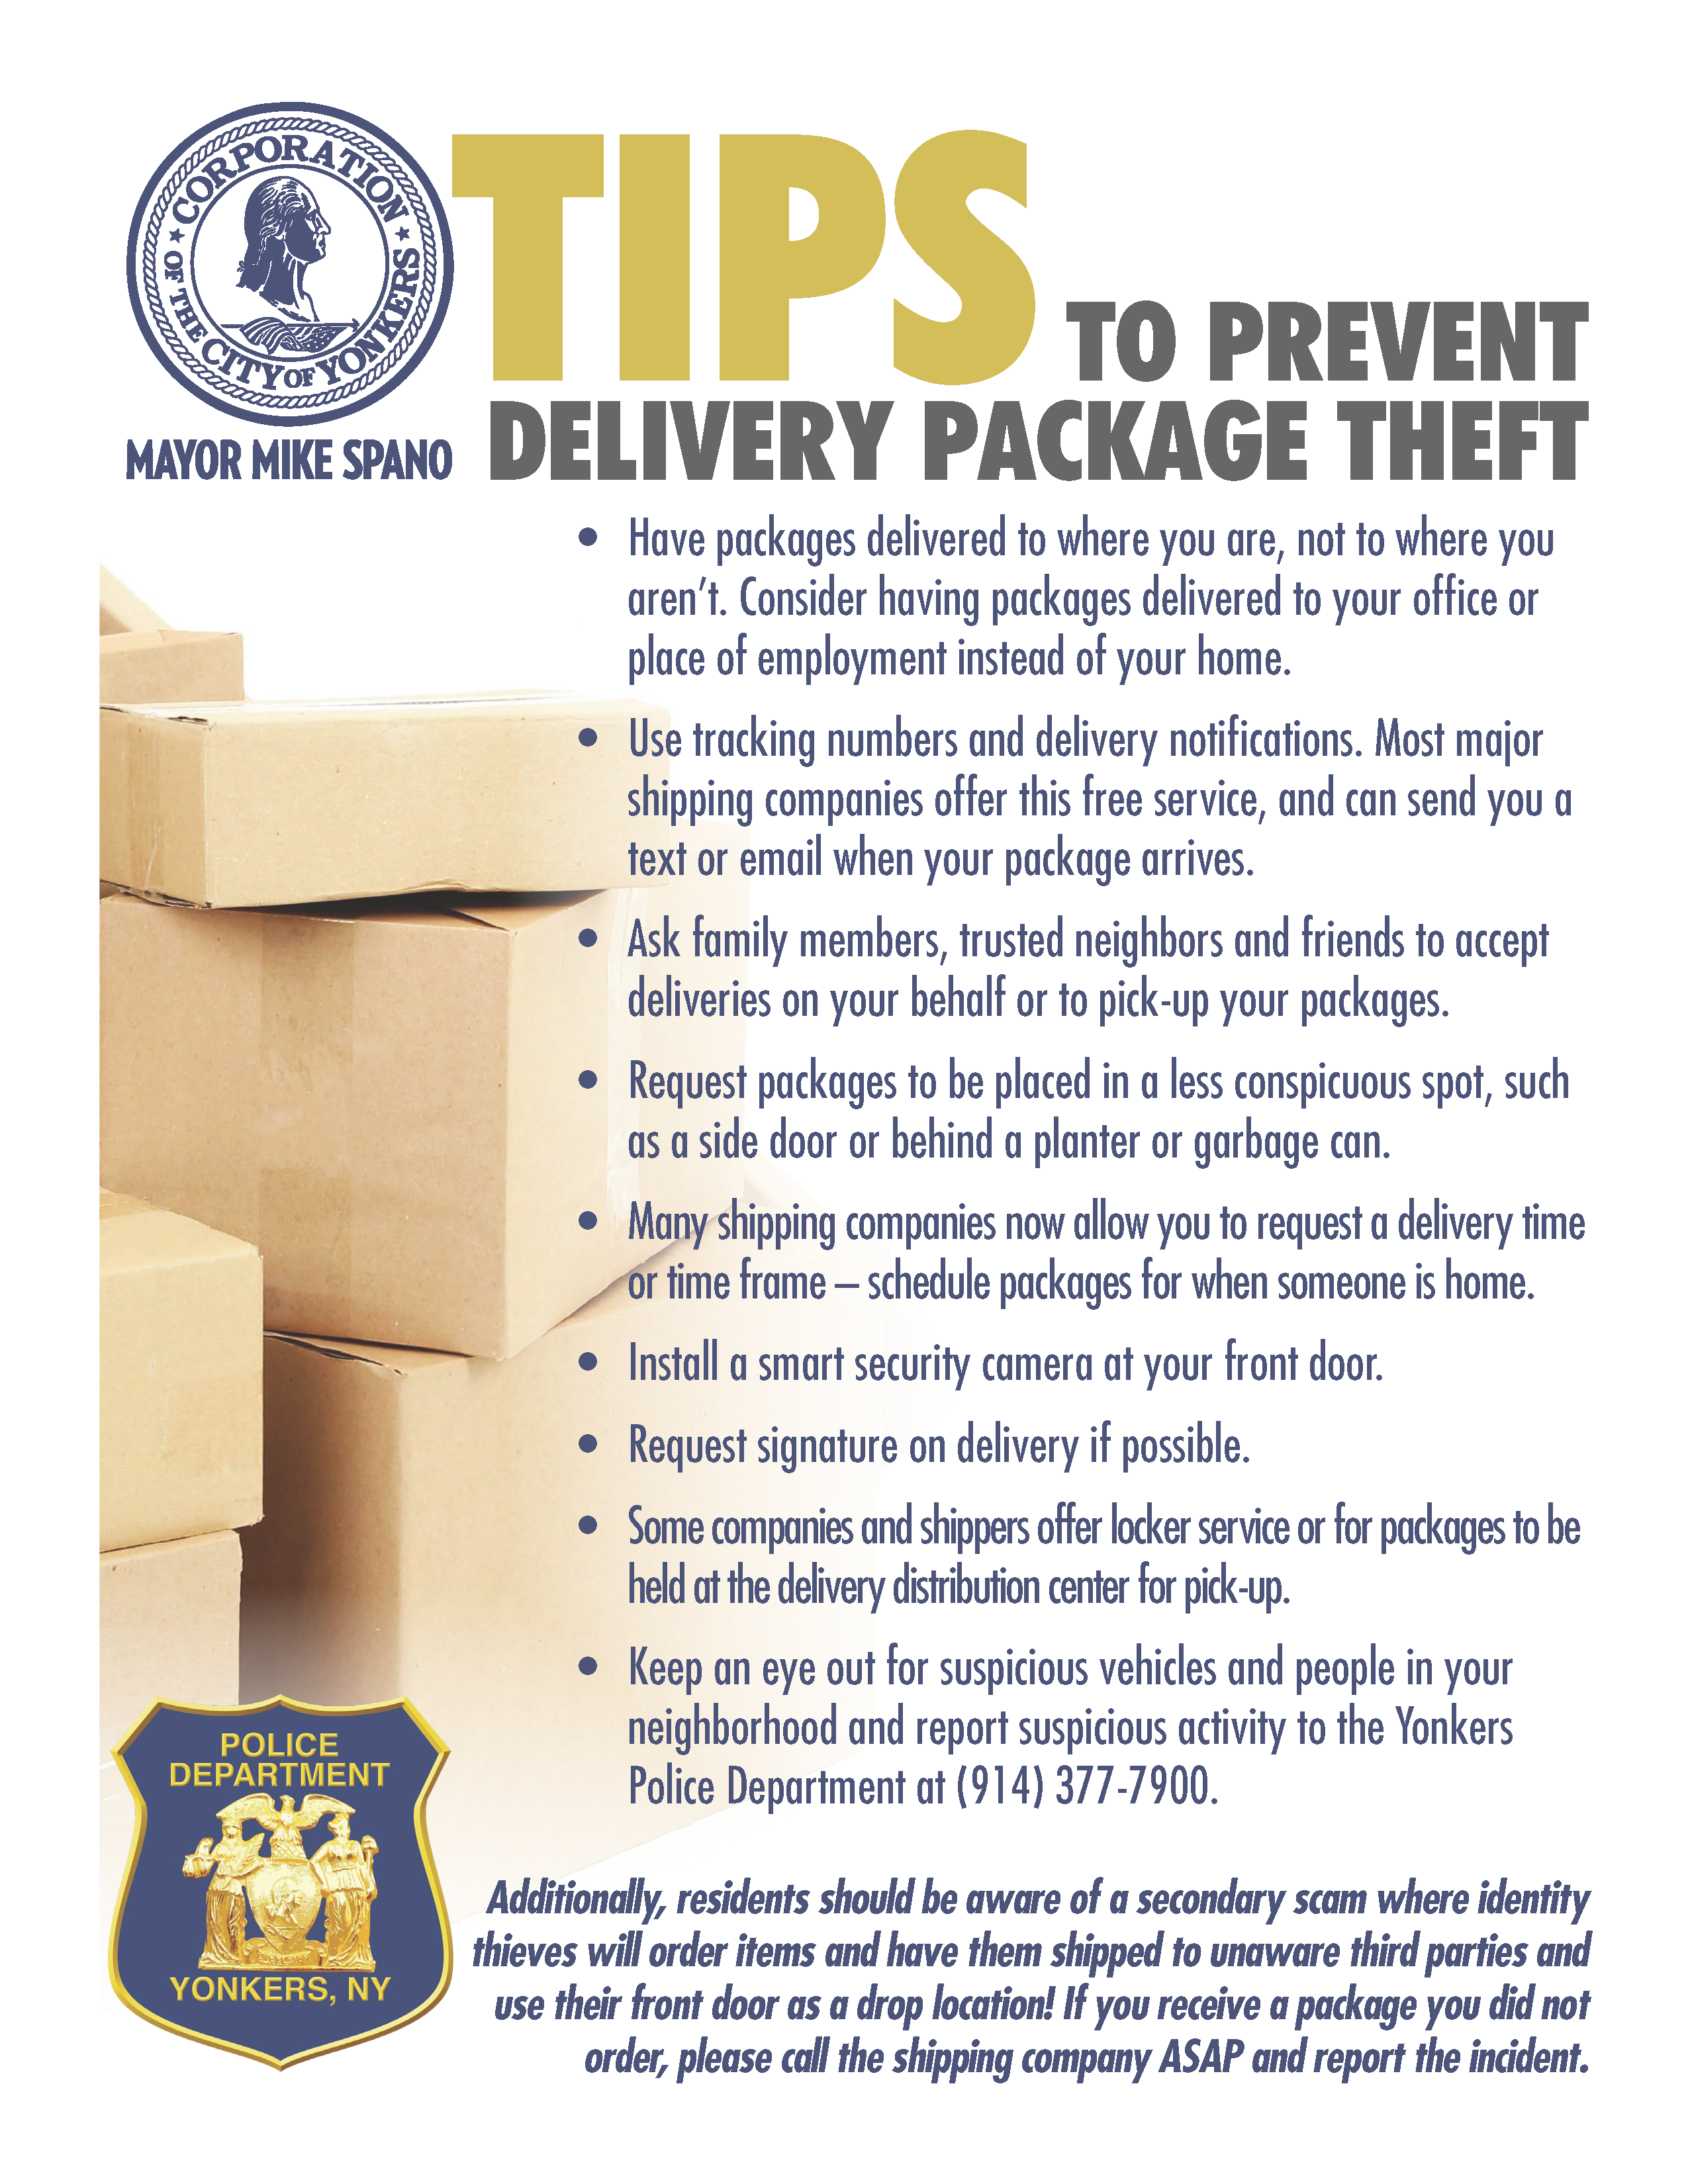 Porch pirates: Tips for preventing package theft